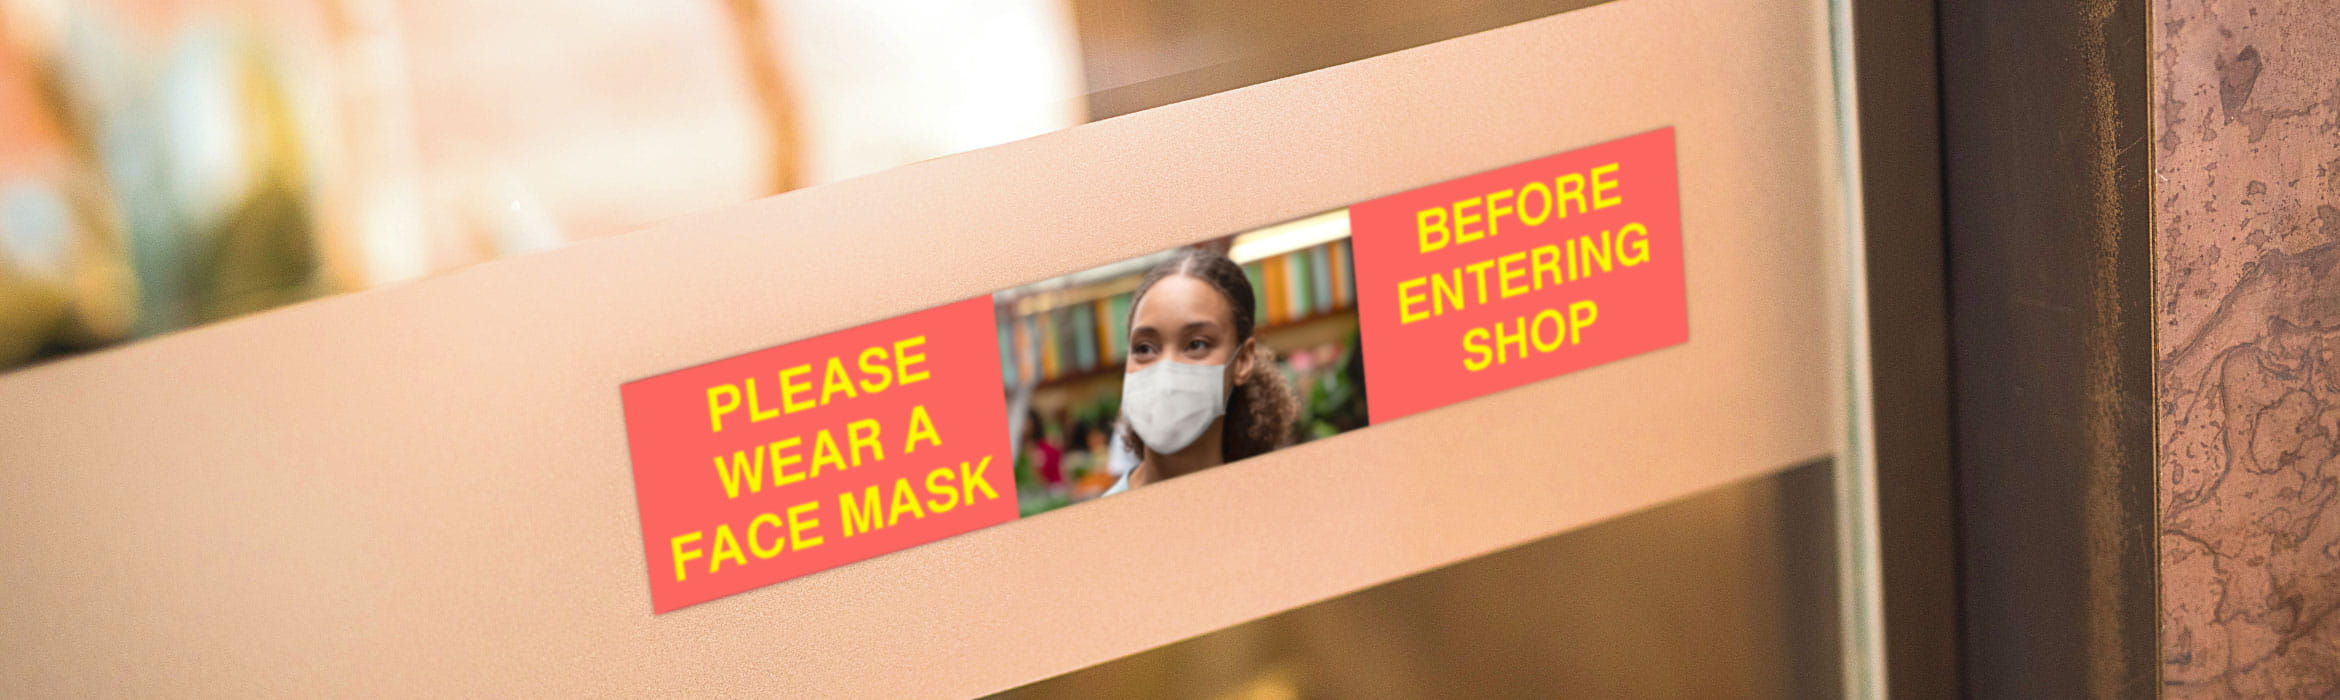 Full colour sign on shop door asking customers to wear a mask